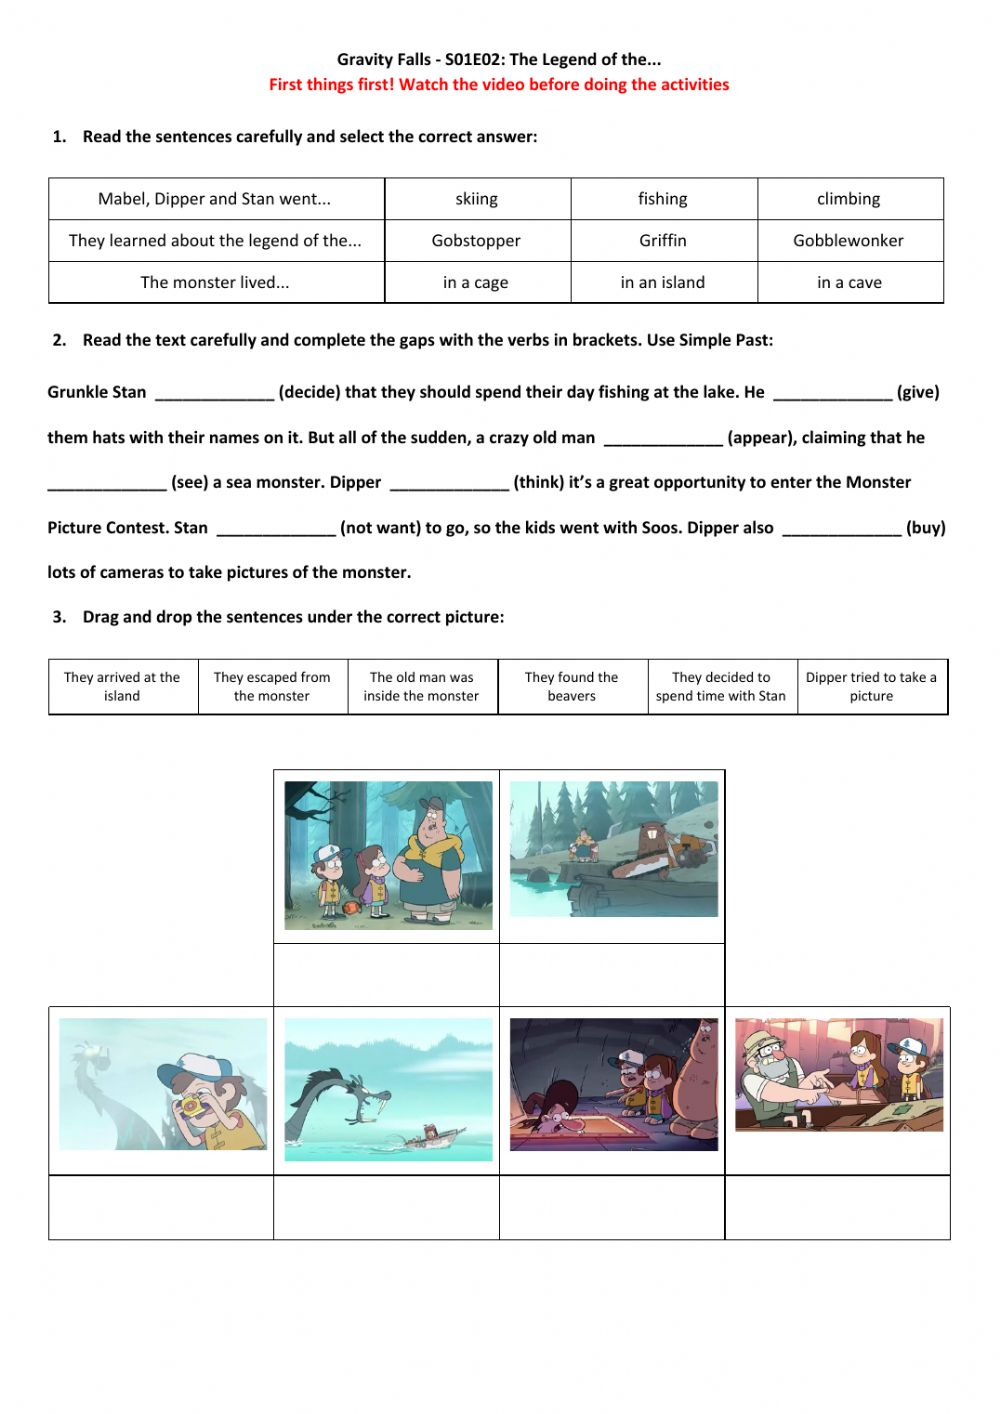 medium resolution of Gravity Falls - S01-E02: The Legend of the... worksheet